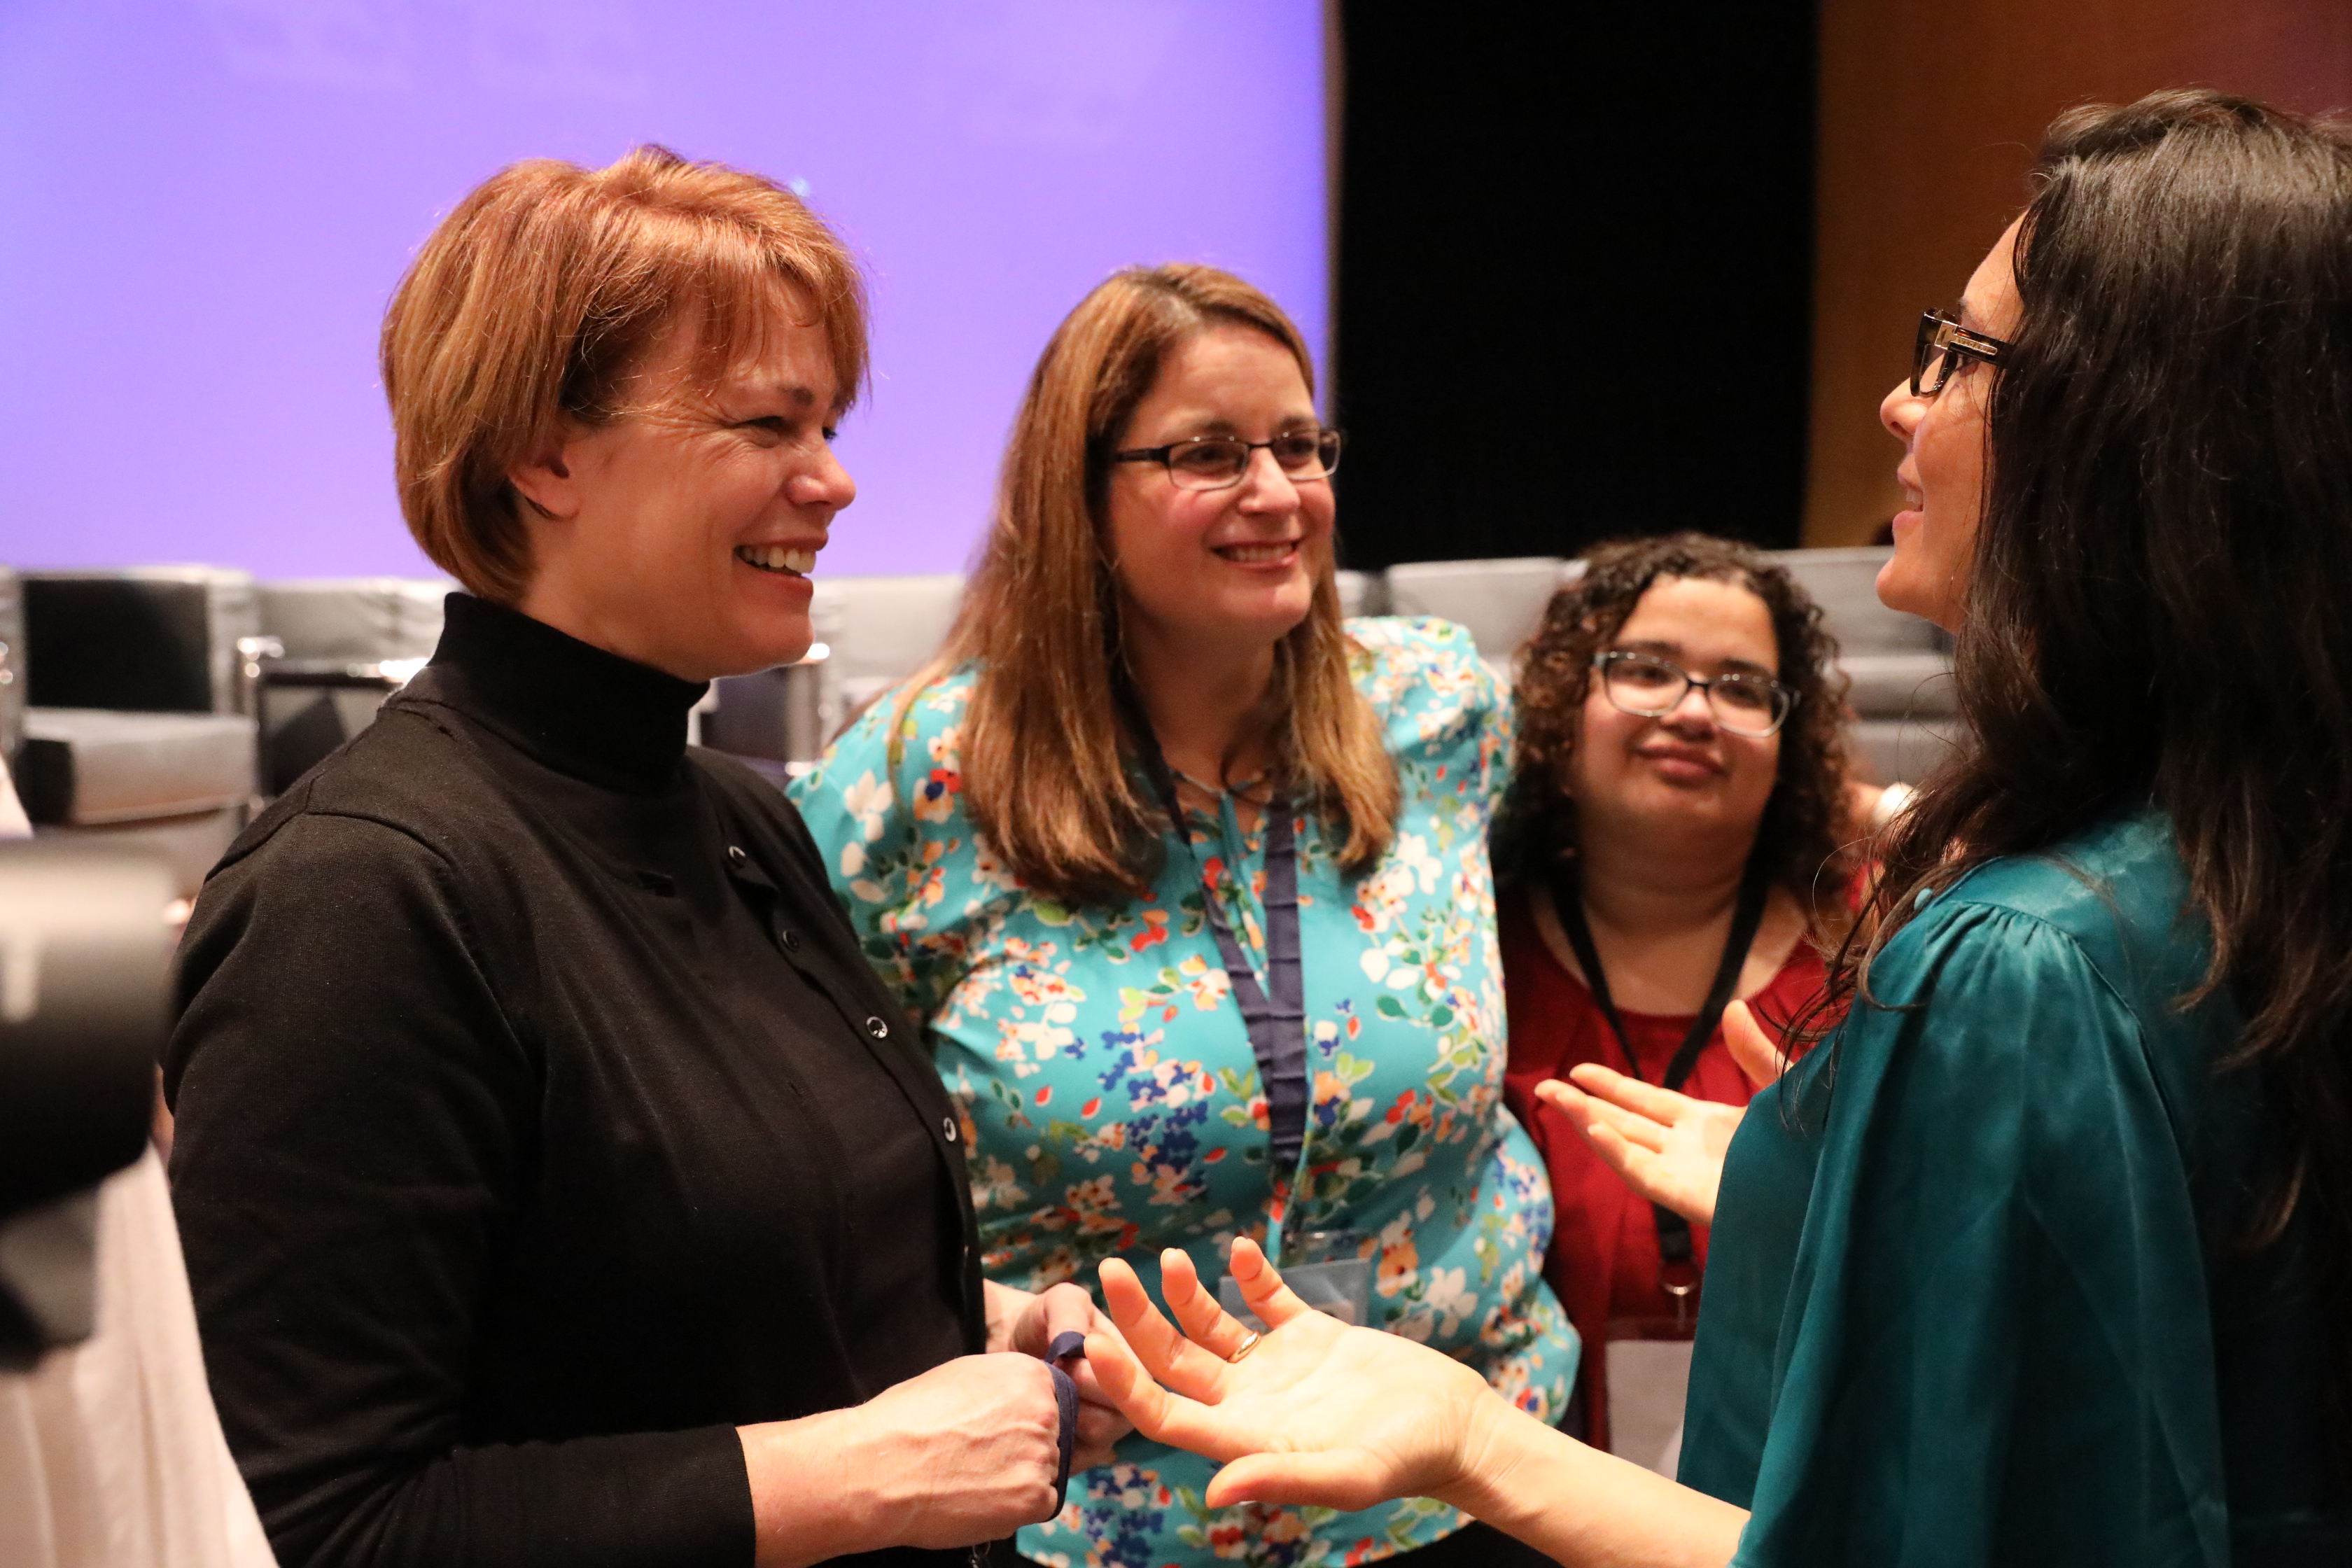 Sister Sharon Eubank, director of LDS Charities and first counselor in the Church's Relief Society general presidency, visits with other leaders at the G20 Interfaith Forum in Buenos Aires, Argentina, Thursday, Sept. 27, 2018.